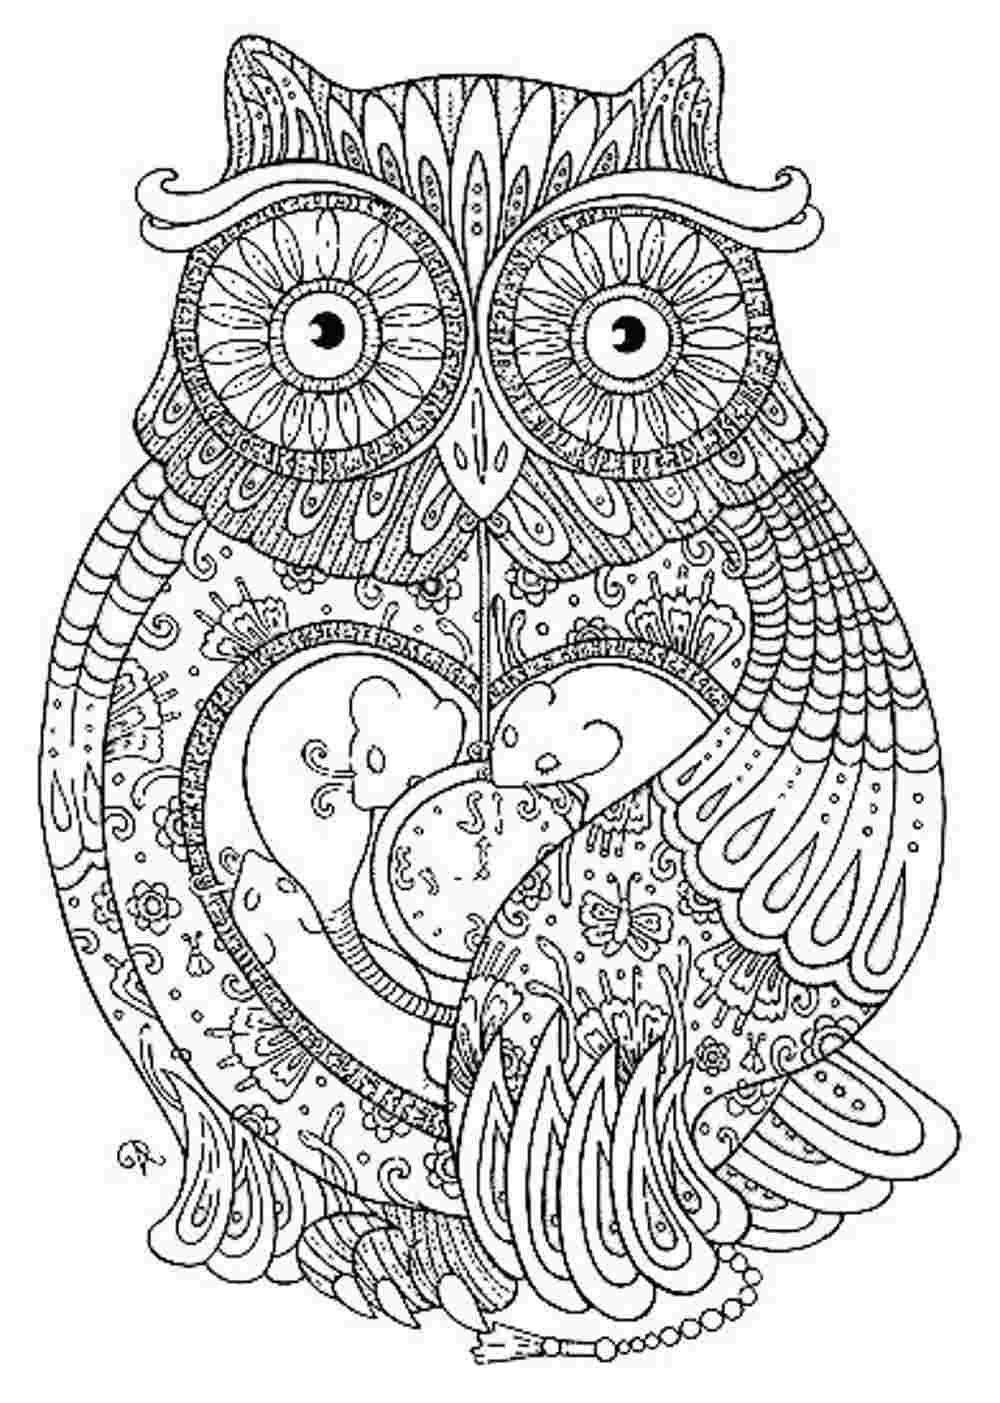 detailed owl coloring pages coloring free owl coloring pages for adults free owl coloring detailed owl pages